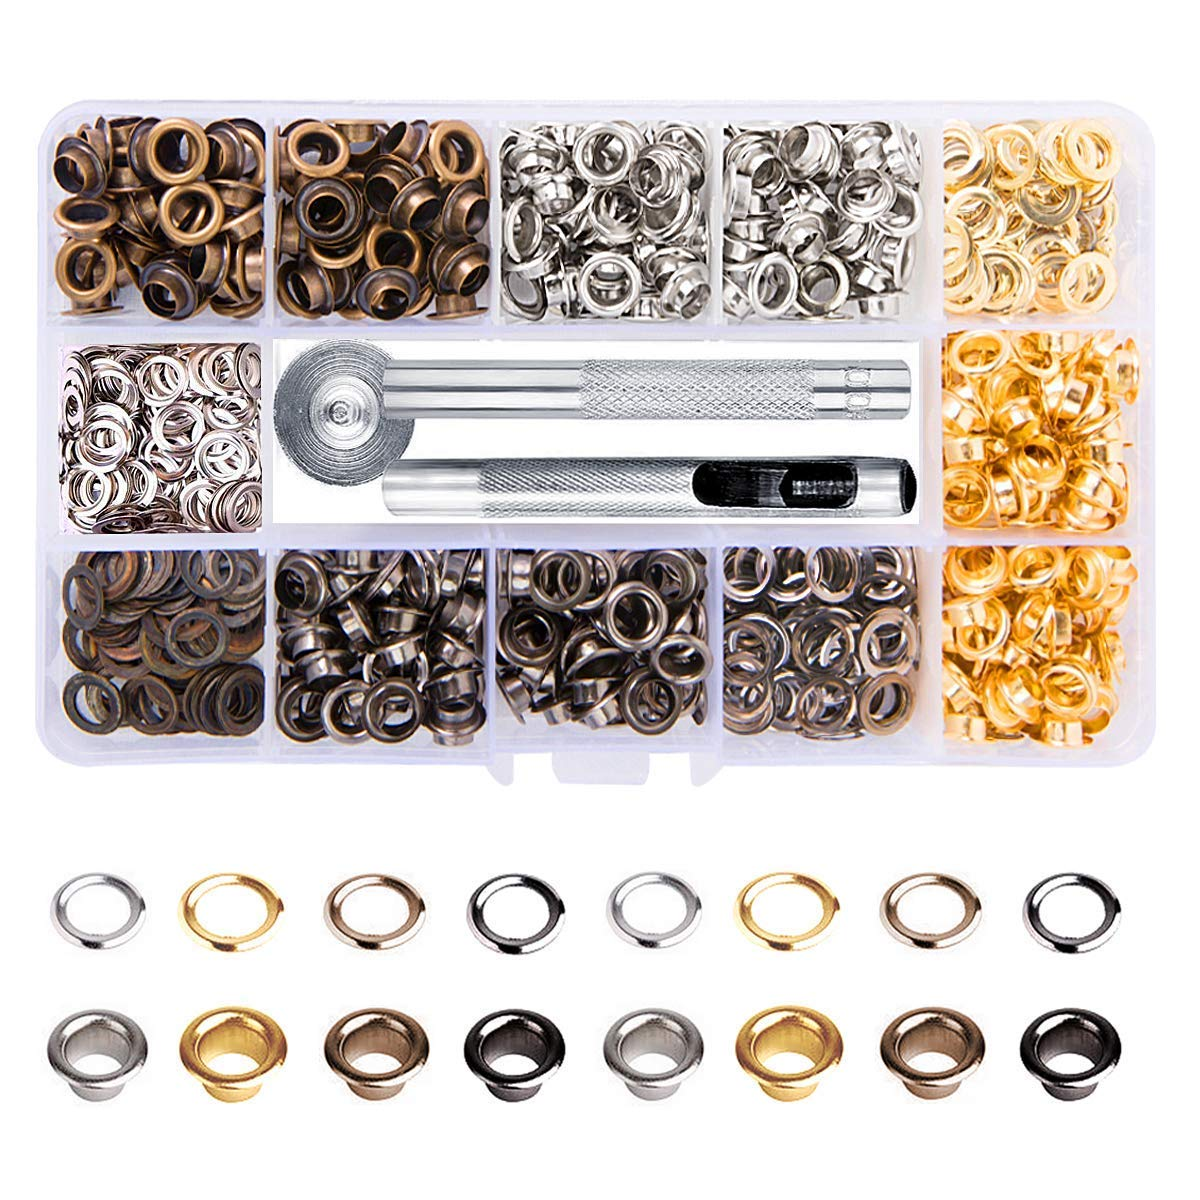 Meikeer 1/4 inch Grommet Kit 400 Sets Grommets Eyelets with 3 Pieces Install Tool Kit (4 Colors) by Meikeer